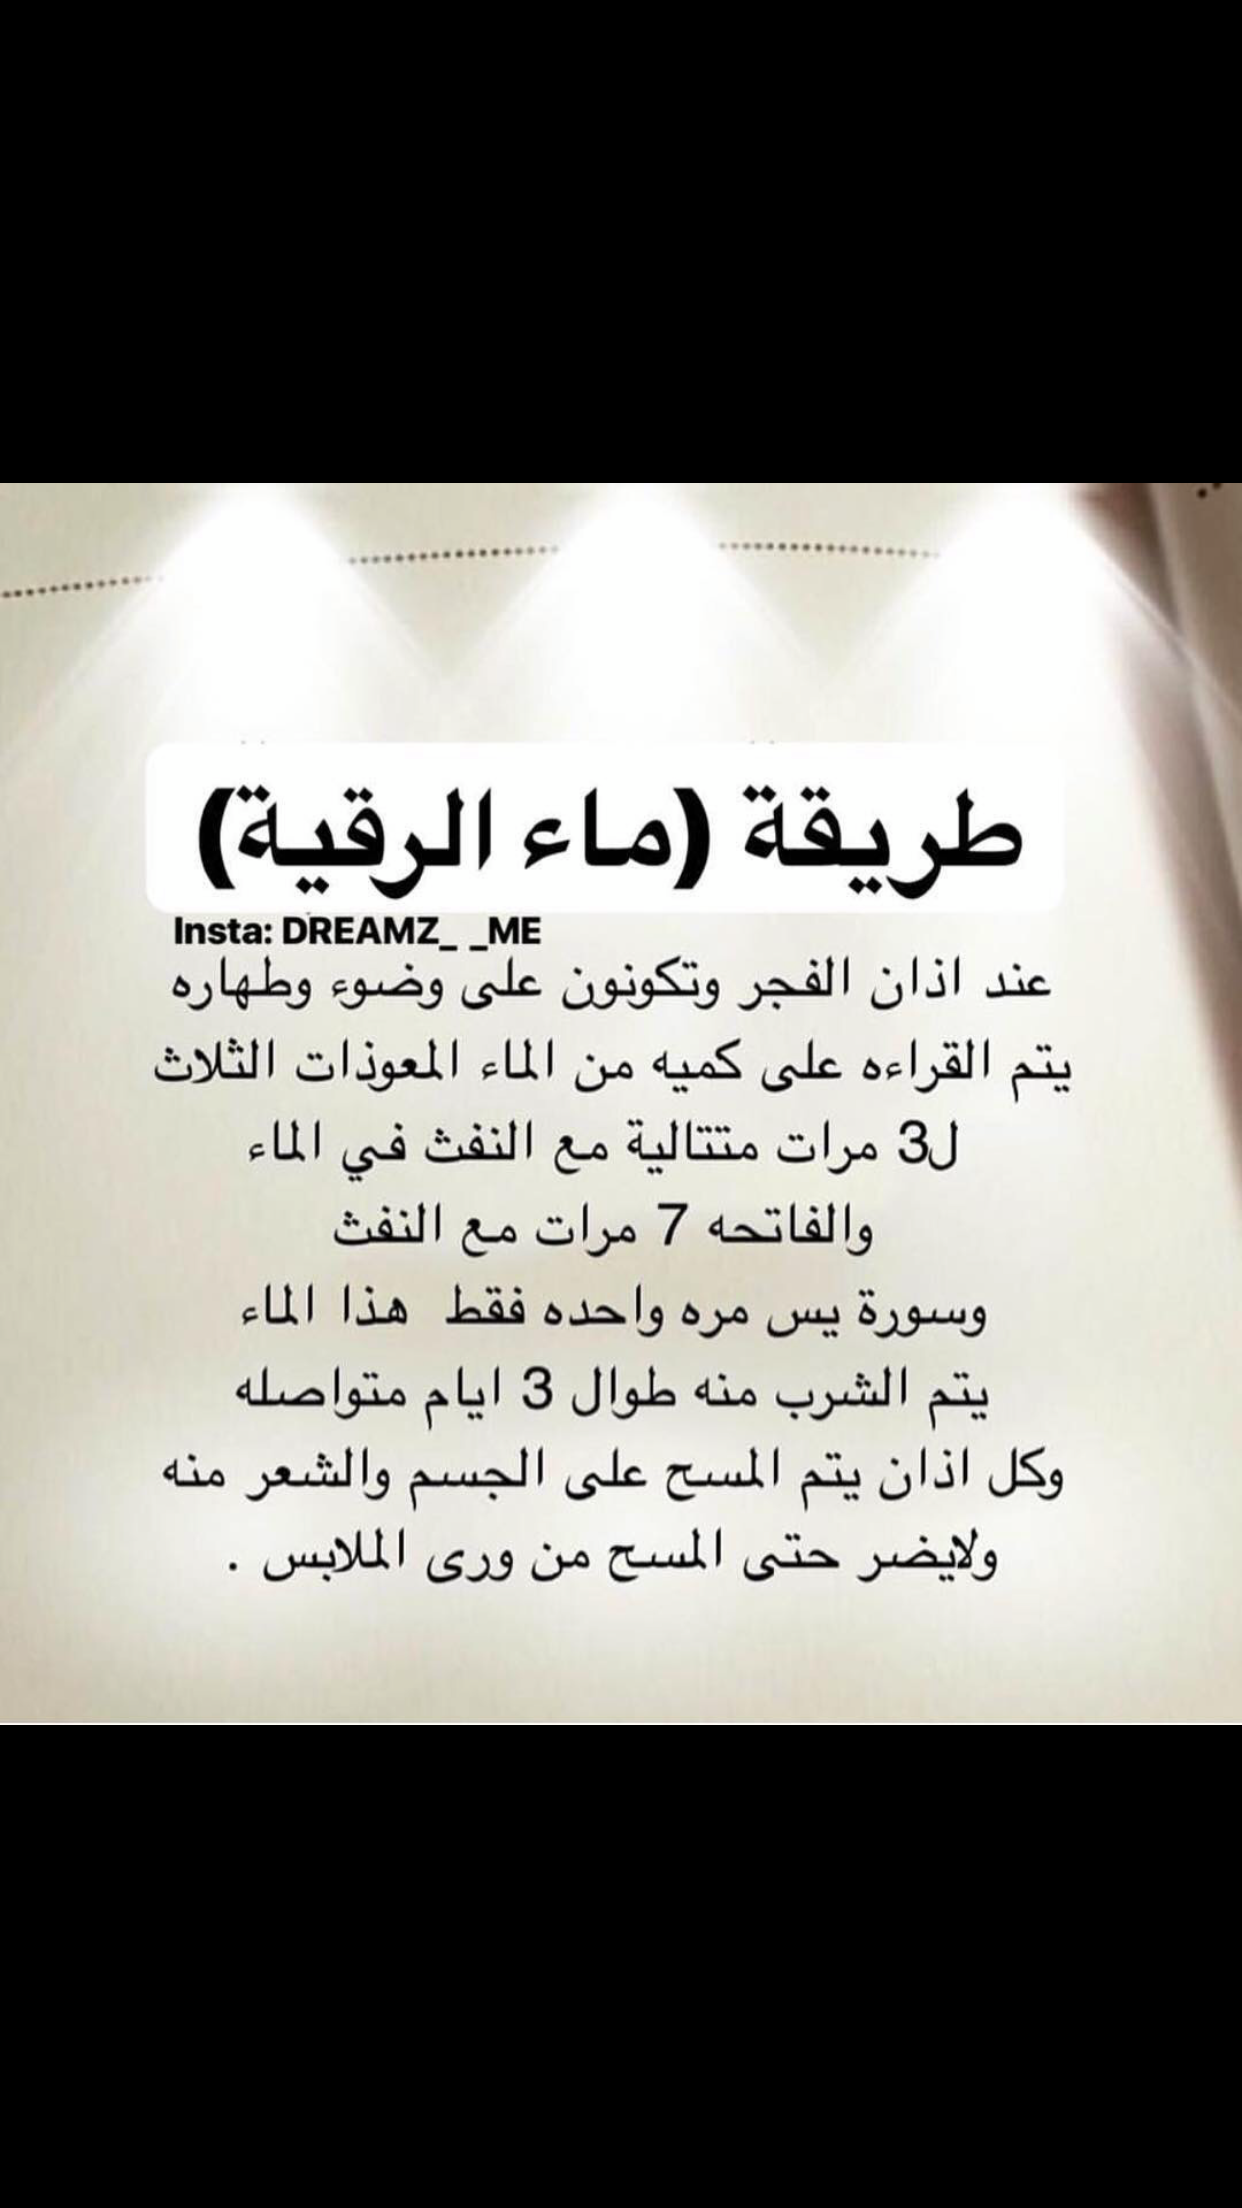 Pin By Sherif Habatto On دينى Islam Facts Islam Beliefs Islamic Phrases